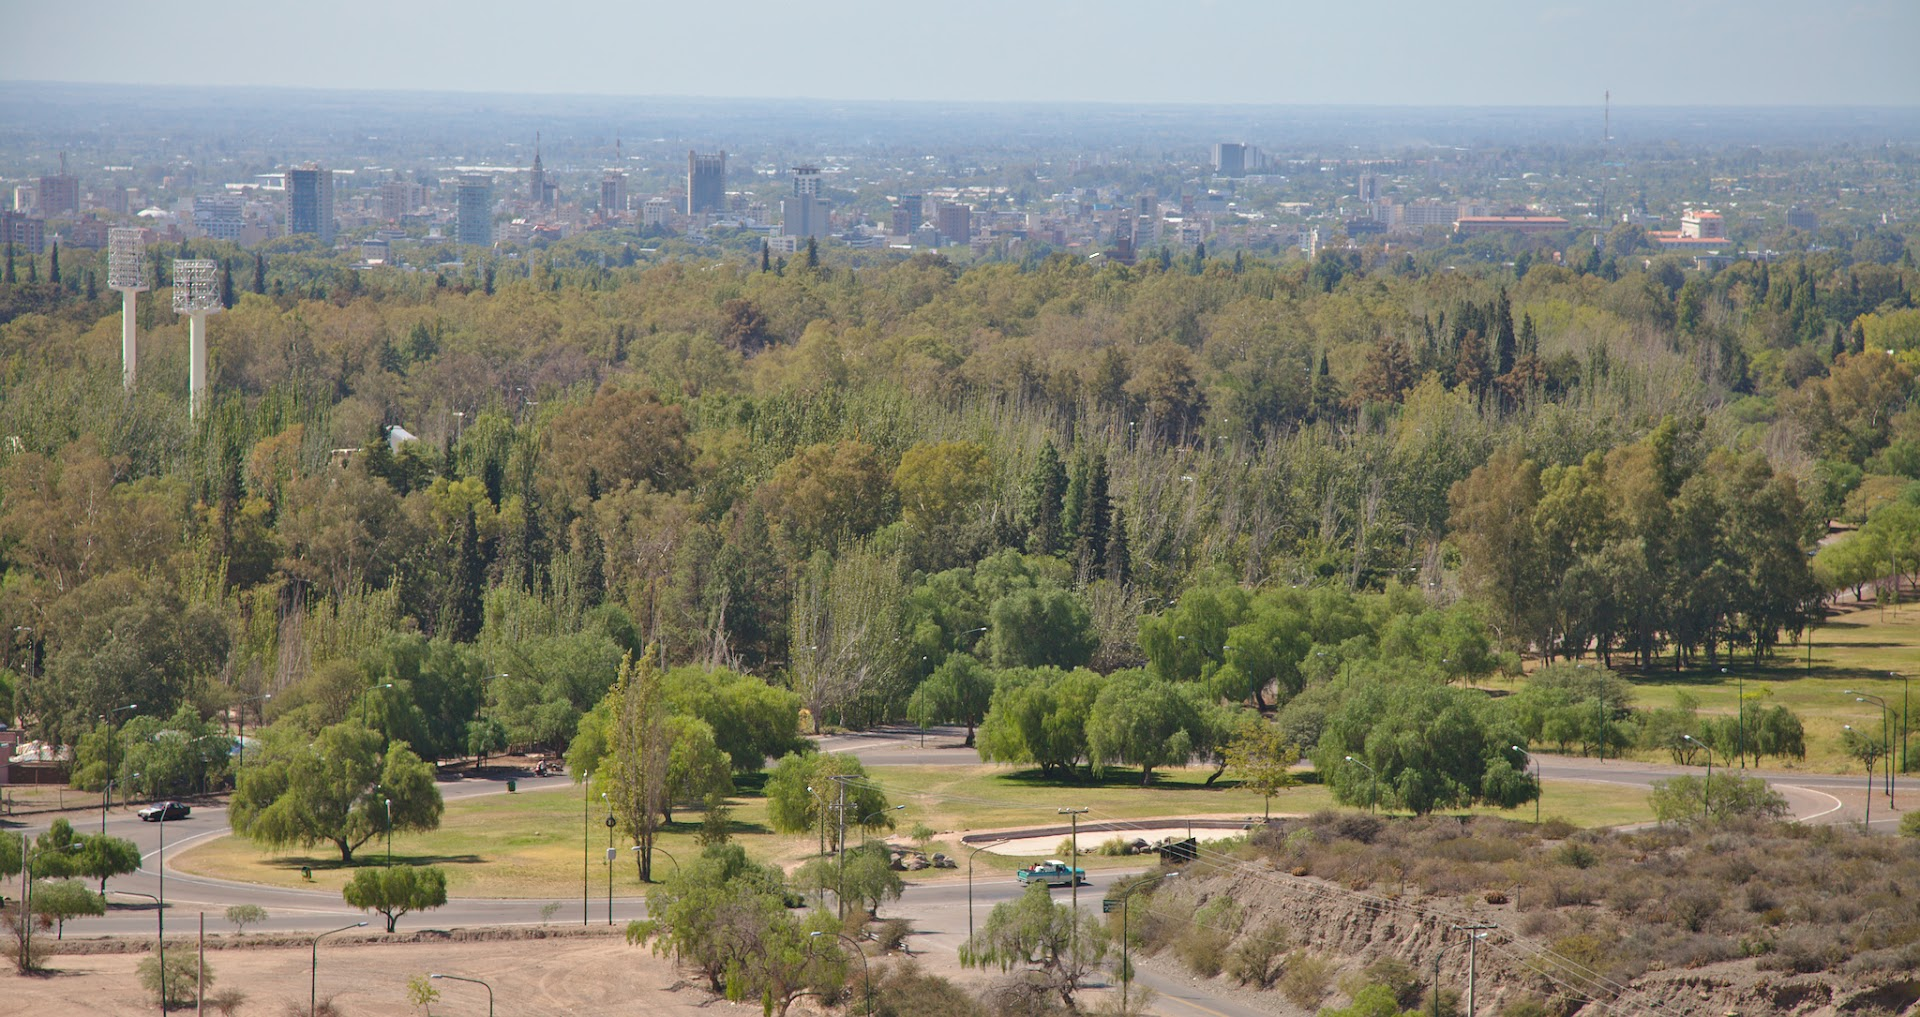 Mendoza is very green, not a single street without trees